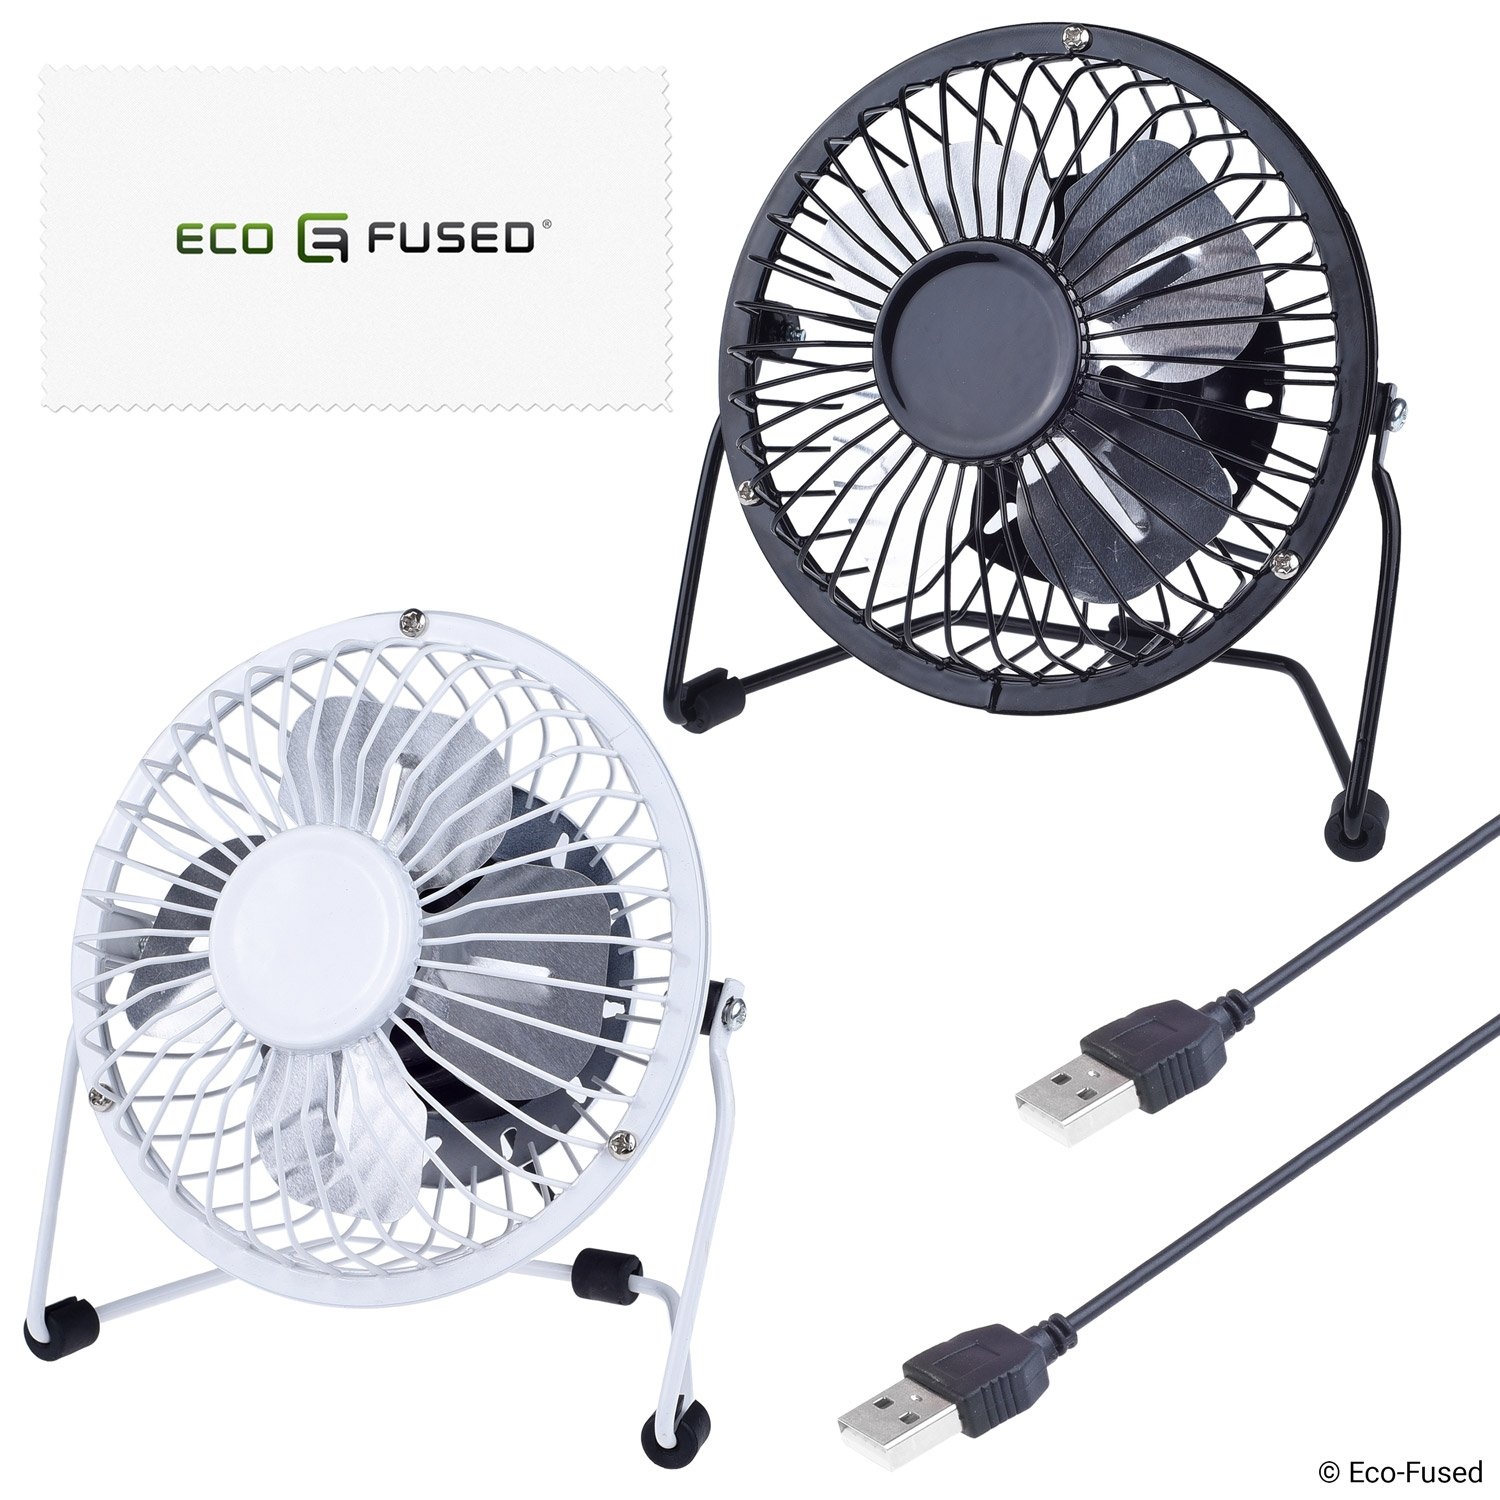 USB Fan (2x) - Table / Desk Model - Adjustable Angle - On / Off Switch - One Speed - USB Powered - For Desktop, Notebook, Gaming Console - Personal Air Flow Cooler - Silent - Ø 3.85 Inch (9.8 cm)